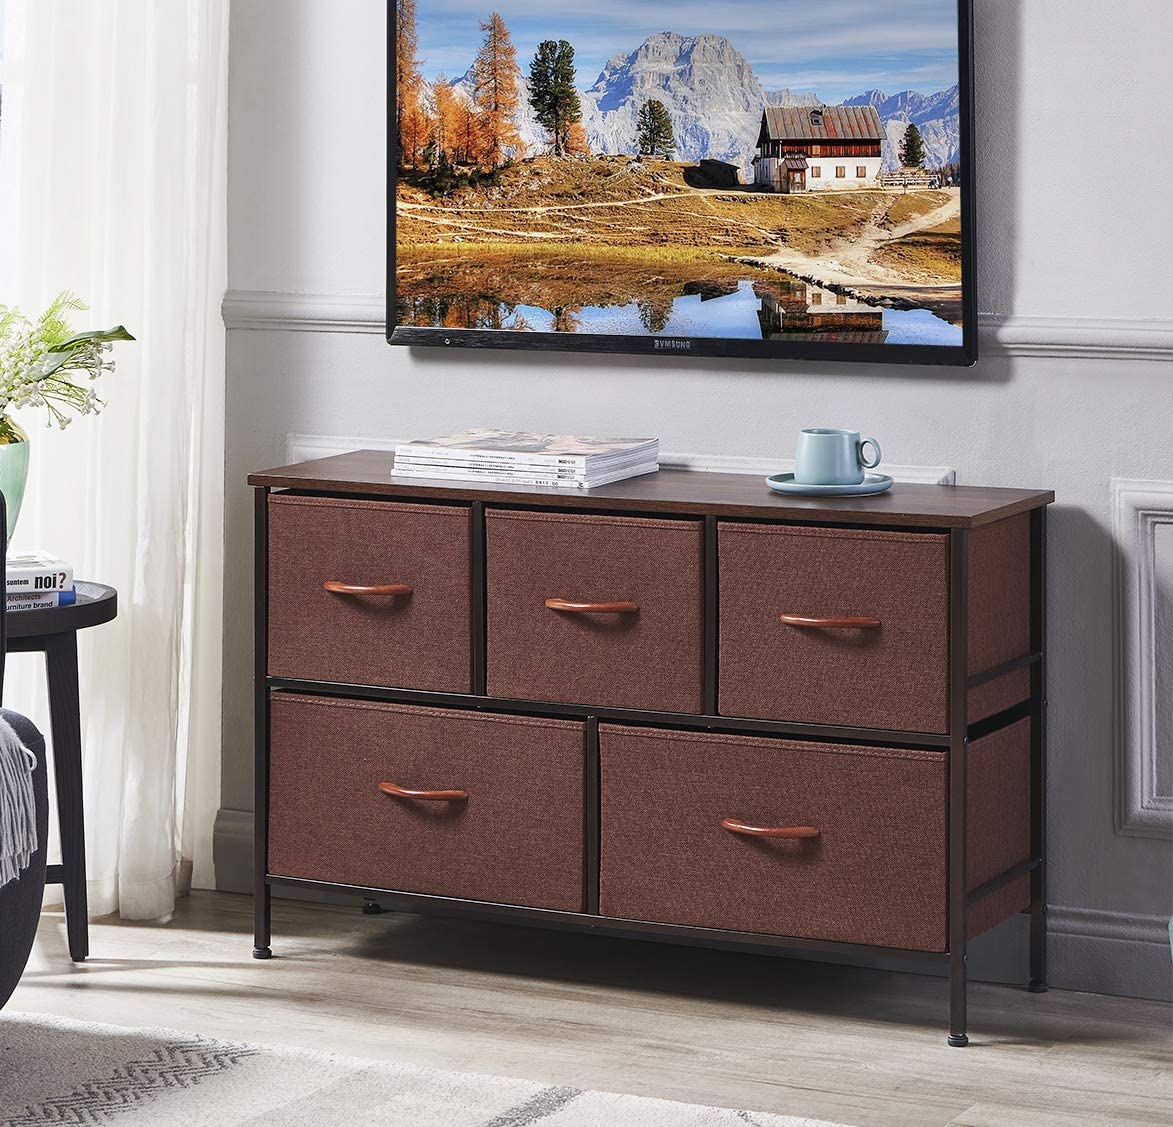 ALLZONE 5 Dresser Chest of Drawers, Extra Wide Storage Tower Unit for Bedroom, Closets, Hallway, Entryway, Nursery